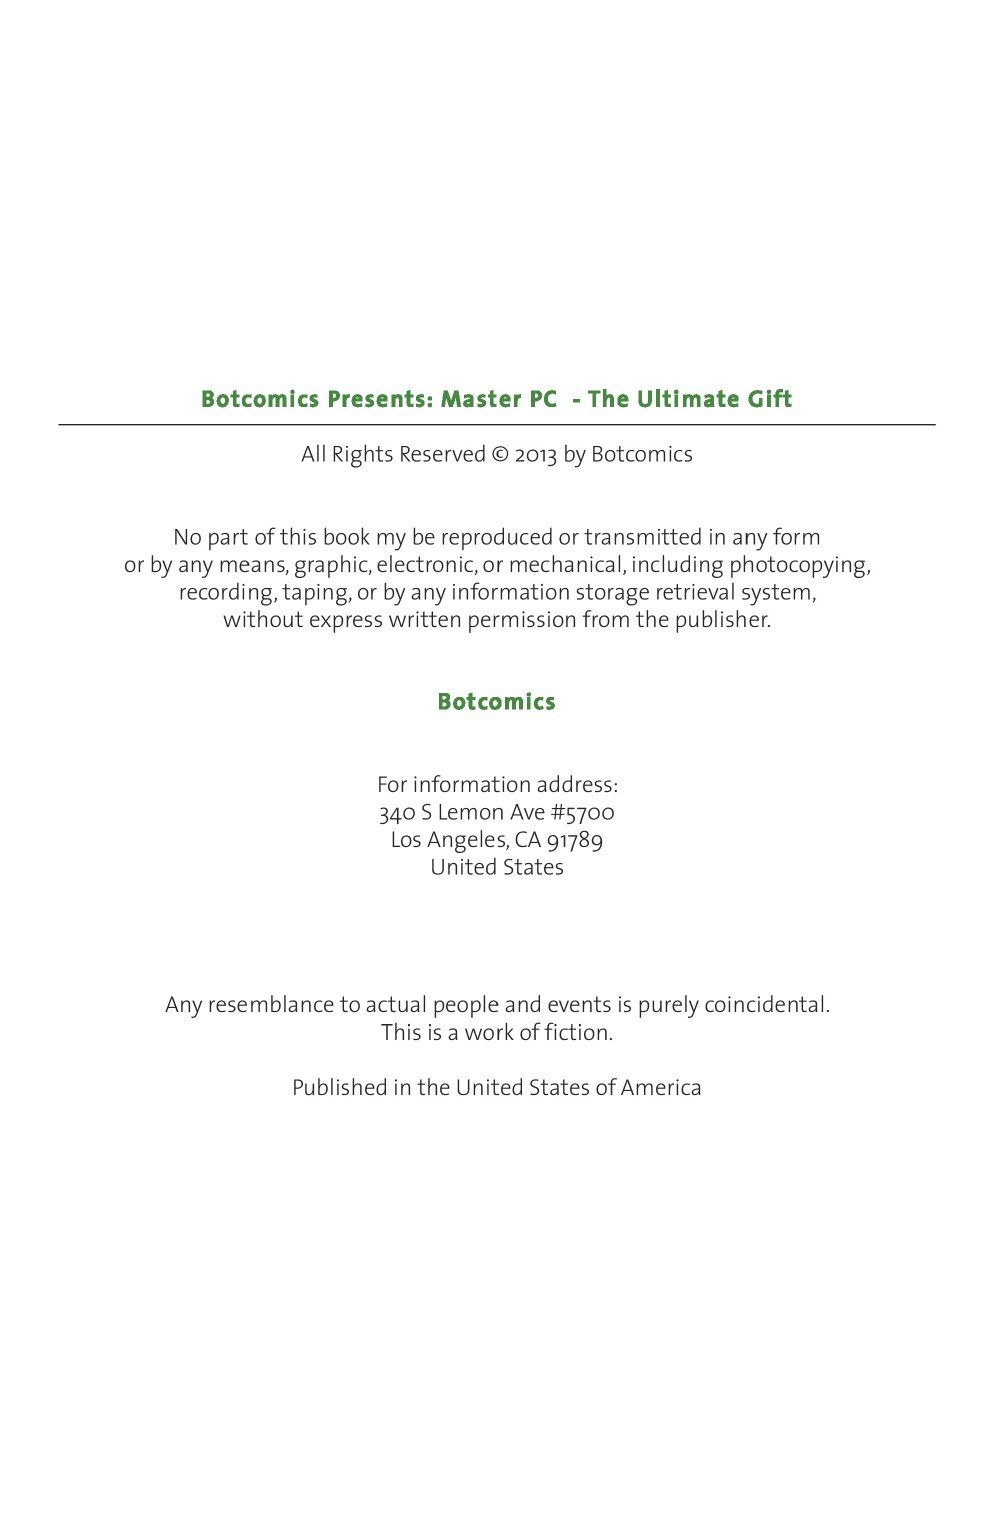 Master PC-The Ultimate Gift 1-4